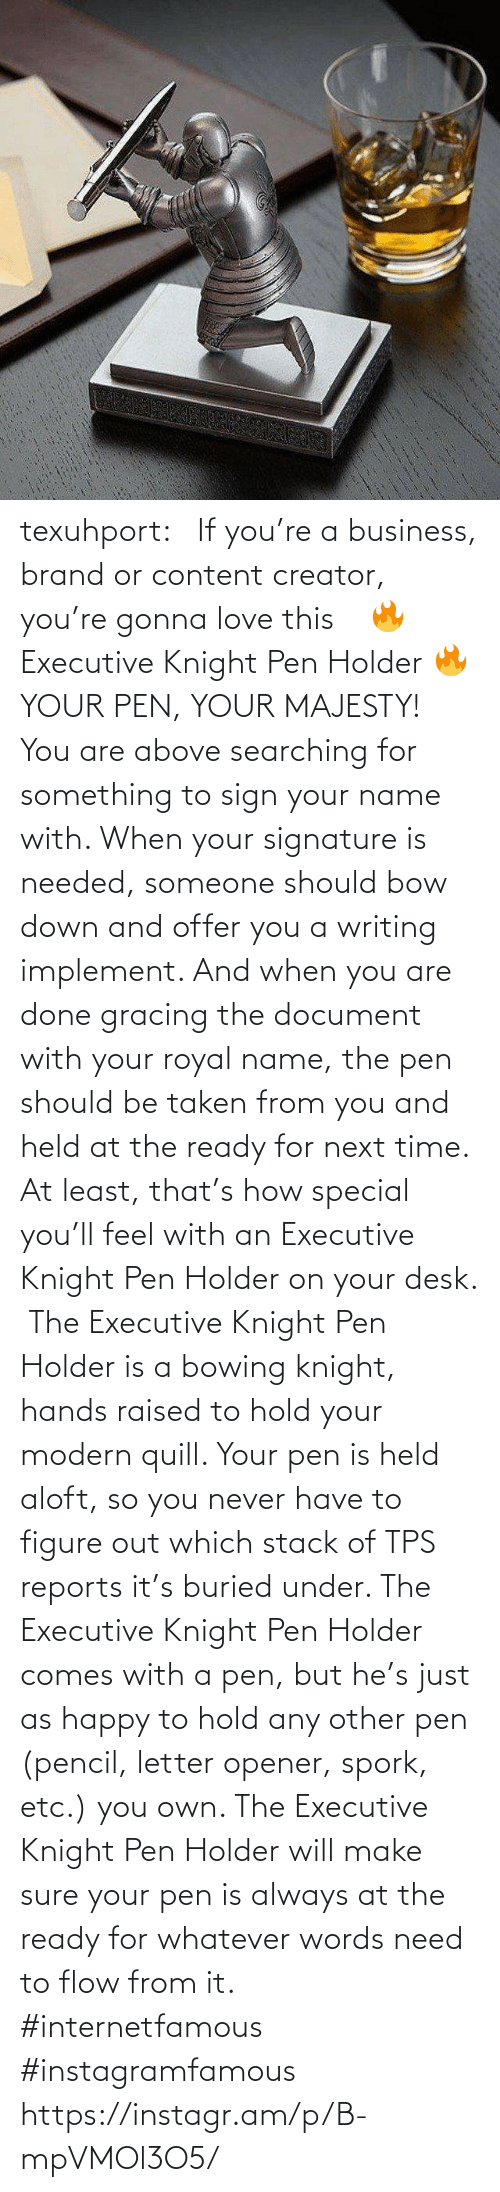 When Your: texuhport:⎆ If you're a business, brand or content creator, you're gonna love this ⎆⁣ 🔥 Executive Knight Pen Holder 🔥⁣ YOUR PEN, YOUR MAJESTY!⁣ ⁣ You are above searching for something to sign your name with. When your signature is needed, someone should bow down and offer you a writing implement. And when you are done gracing the document with your royal name, the pen should be taken from you and held at the ready for next time. At least, that's how special you'll feel with an Executive Knight Pen Holder on your desk.⁣ ⁣ The Executive Knight Pen Holder is a bowing knight, hands raised to hold your modern quill. Your pen is held aloft, so you never have to figure out which stack of TPS reports it's buried under. The Executive Knight Pen Holder comes with a pen, but he's just as happy to hold any other pen (pencil, letter opener, spork, etc.) you own. The Executive Knight Pen Holder will make sure your pen is always at the ready for whatever words need to flow from it.⁣ #internetfamous  #instagramfamous https://instagr.am/p/B-mpVMOl3O5/